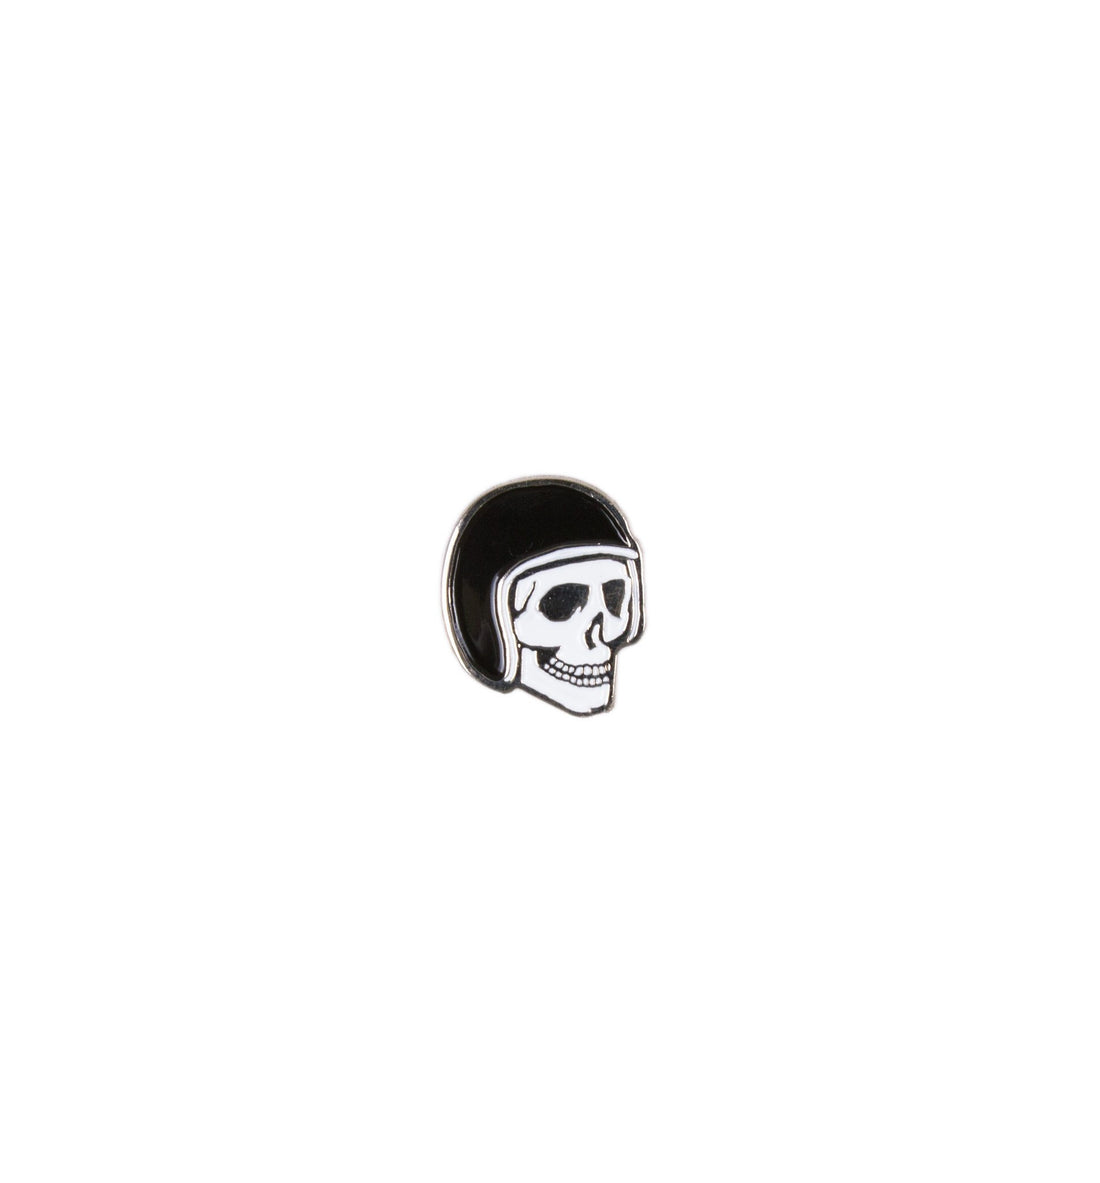 Helmet Skull Enamel Pin - Stickers/Pins/Patches - Iron and Resin